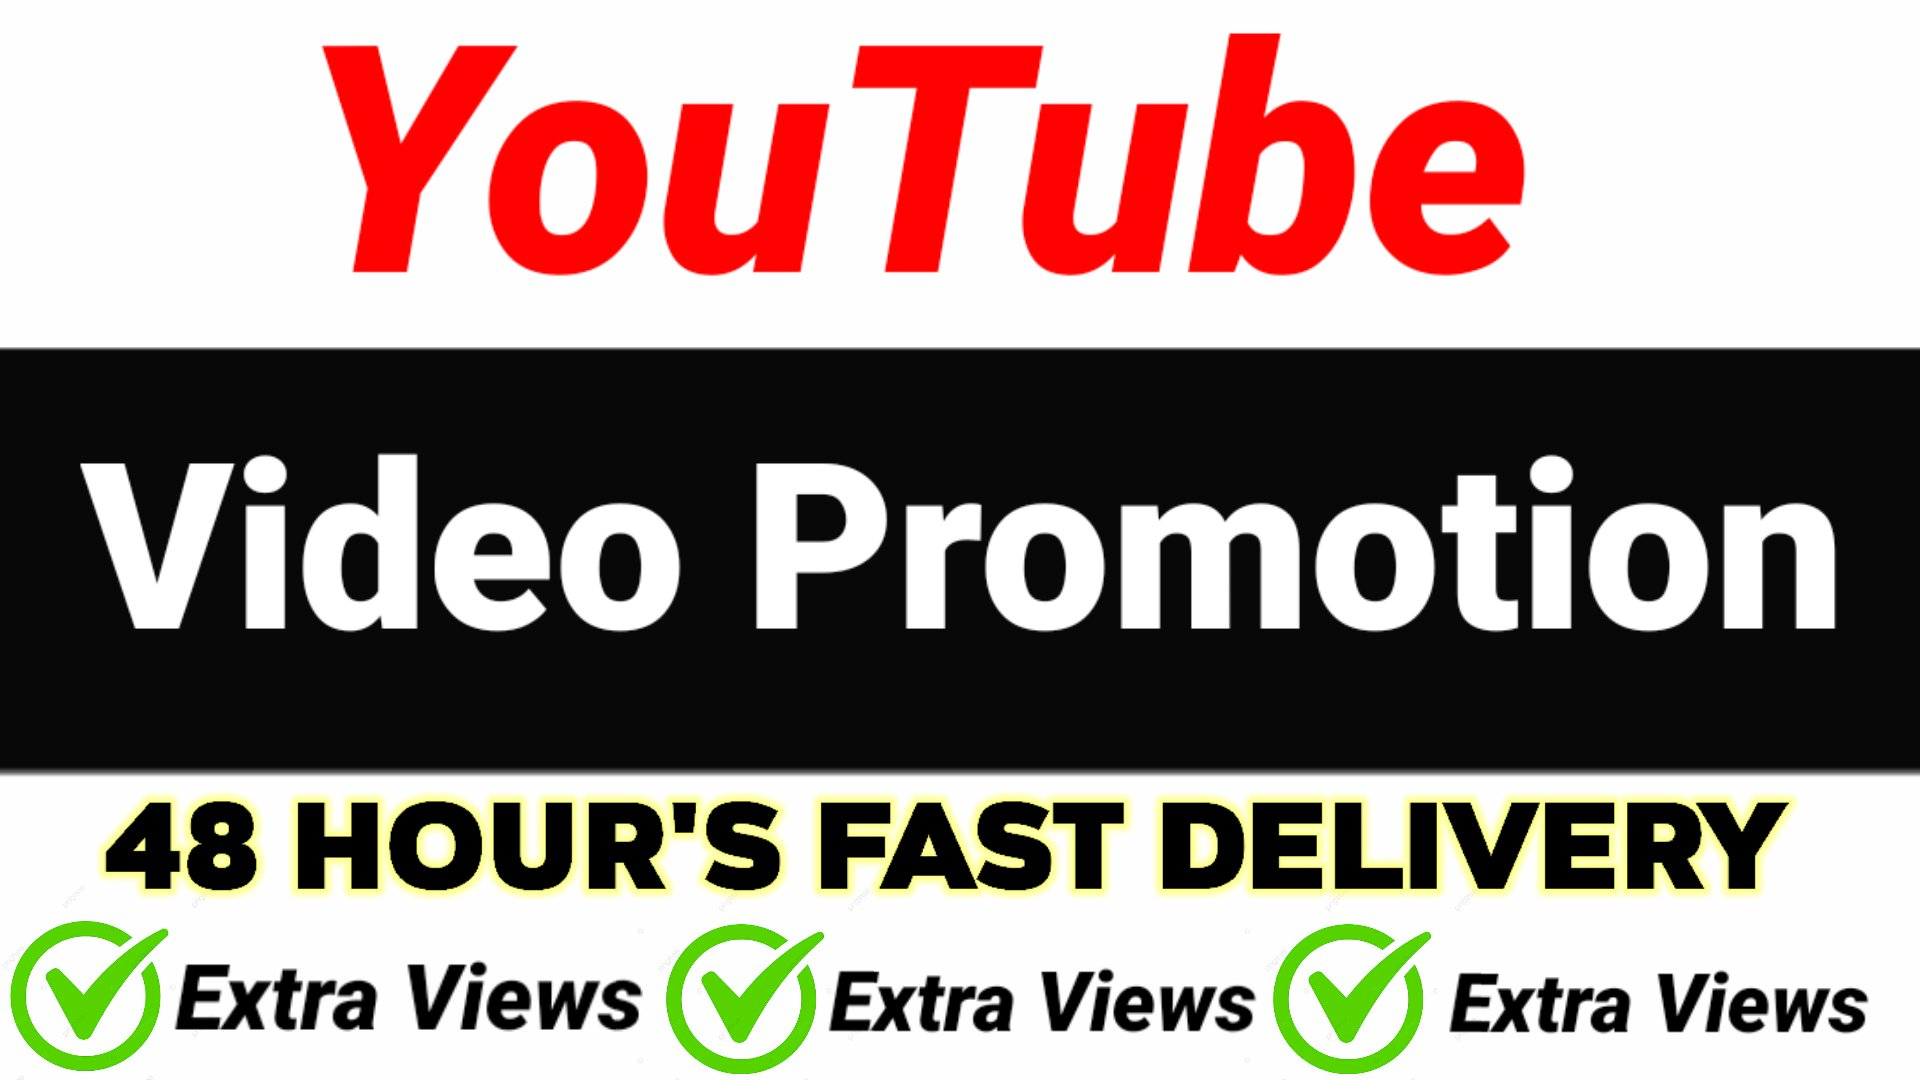 do YouTube video promotion 48 hours fast delivery